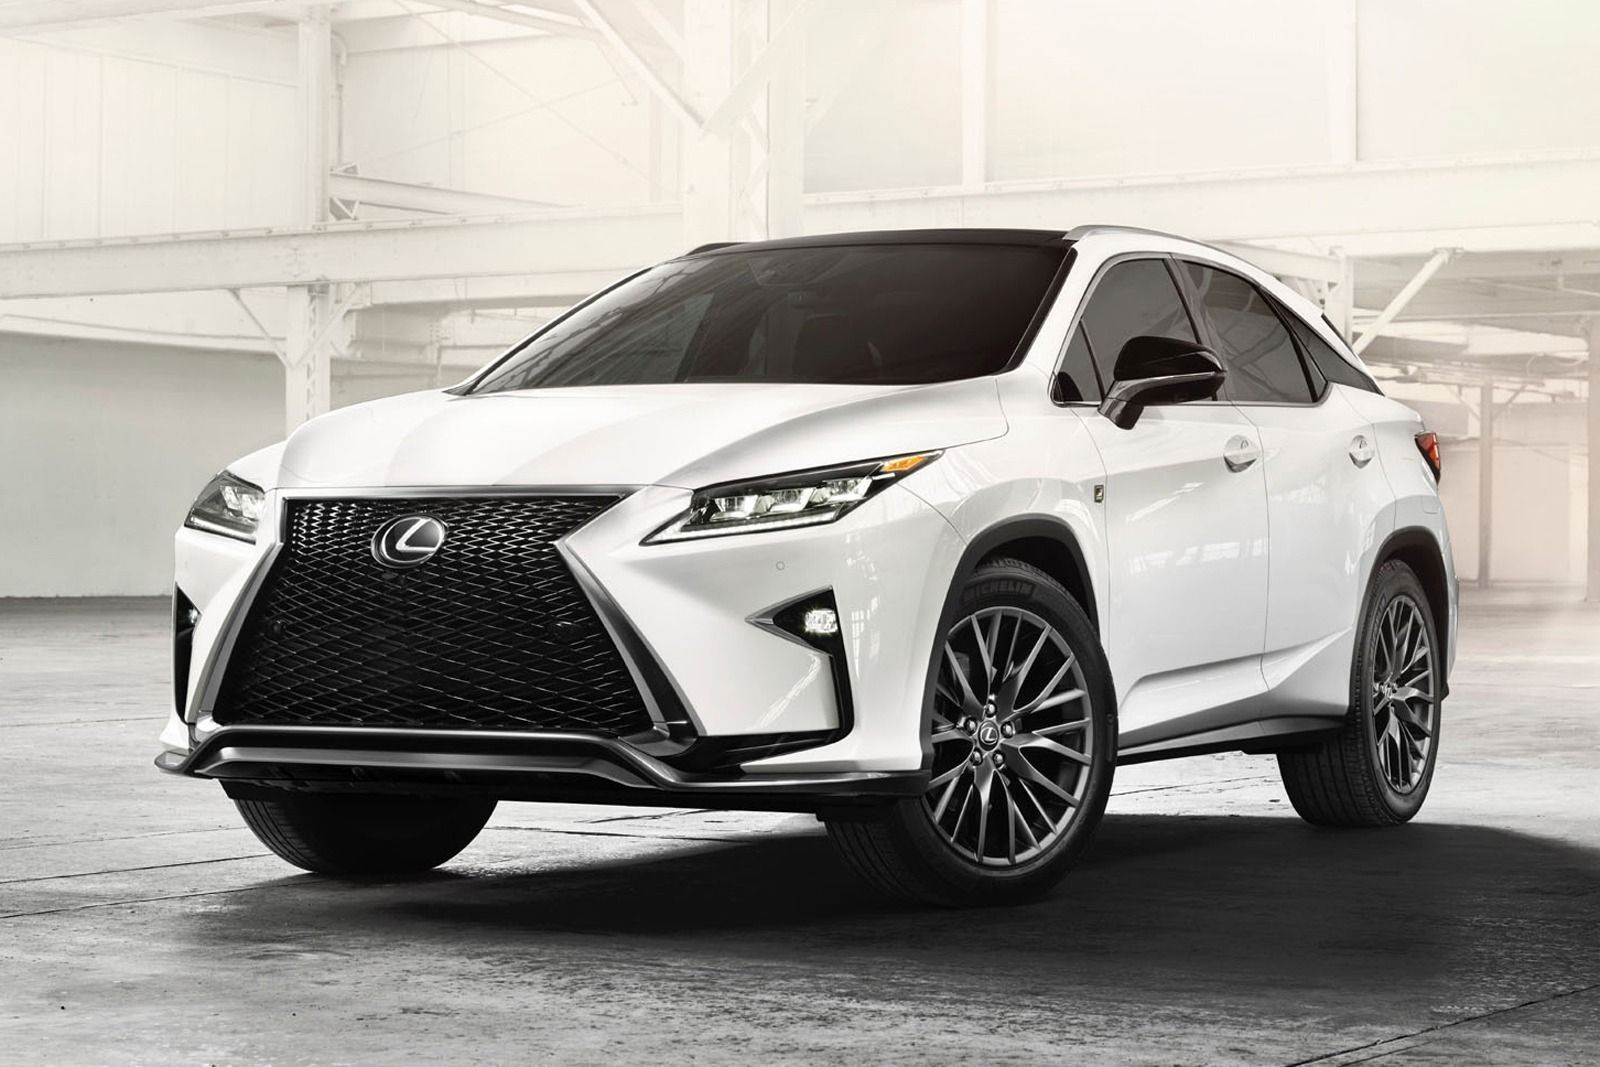 2020 Lexus Rx 350 Engine Design Price And Release Rumors Car Rumor Lexus Rx 350 Lexus Suv Lexus Cars